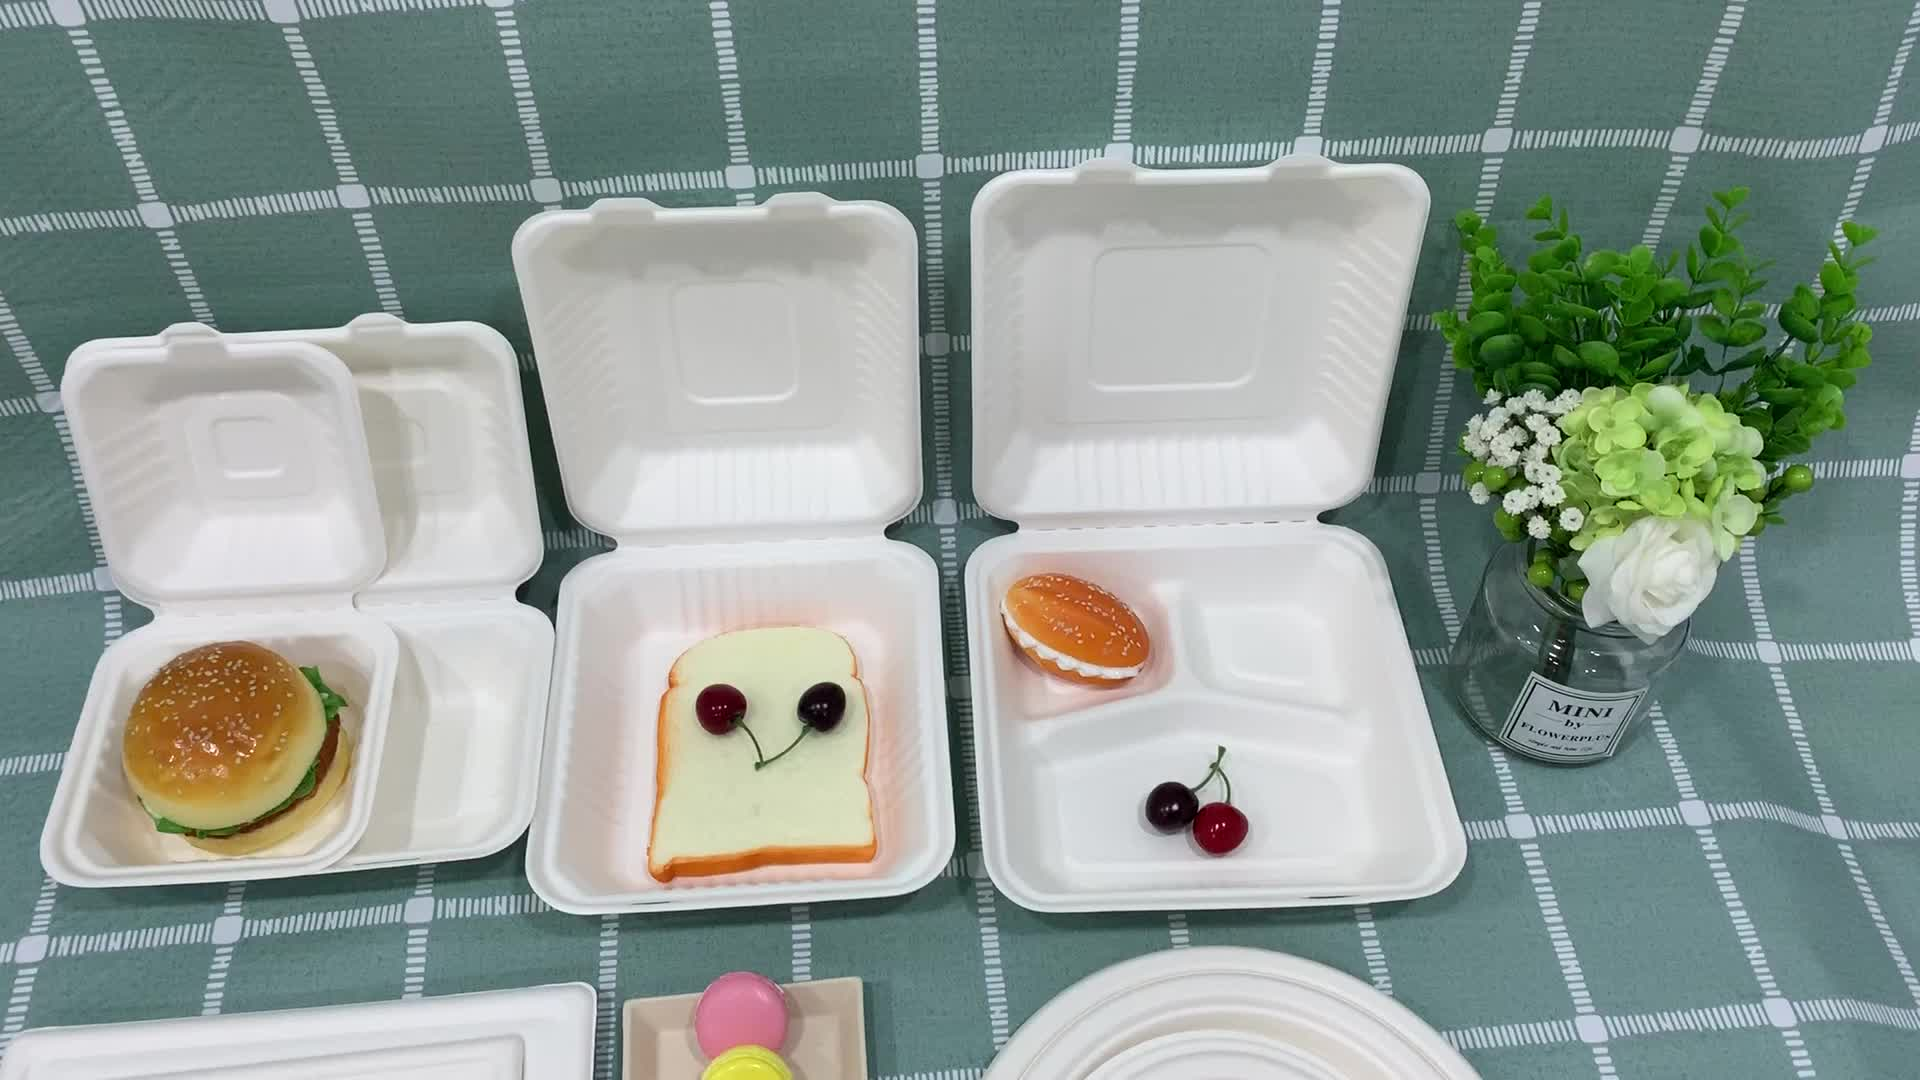 Sugarcane Bagasse Big tray Disposable Food Container Biodegradable food container